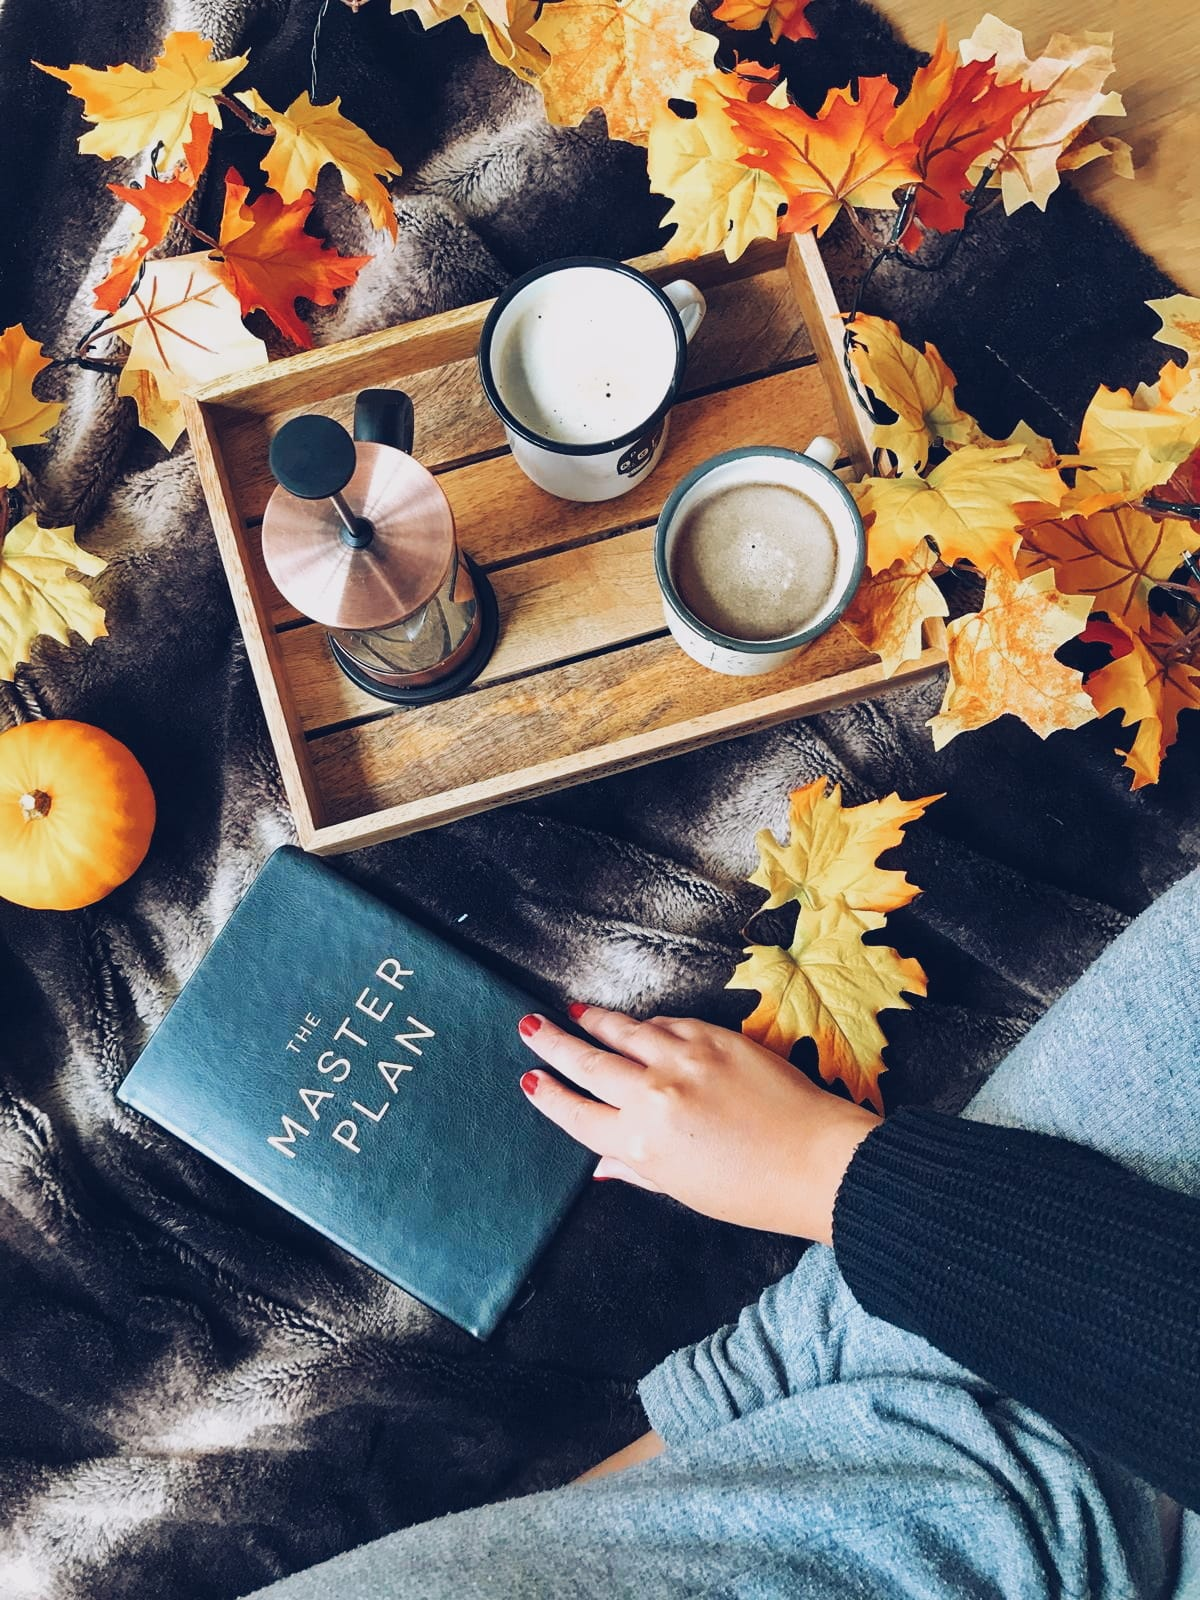 These Are A Few Of My Favourite Things 🍂🍁